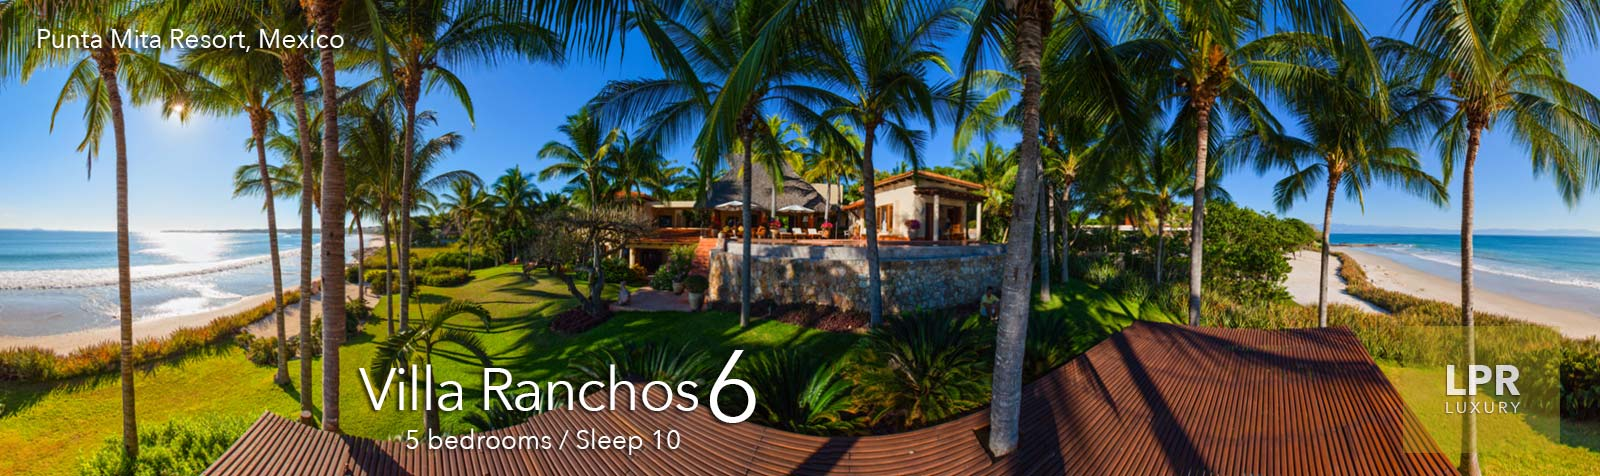 Villa Ranchos 6 - Luxury Punta Mita Resort - North Shore Puerto Vallarta Real Estate and Vacation Rentals